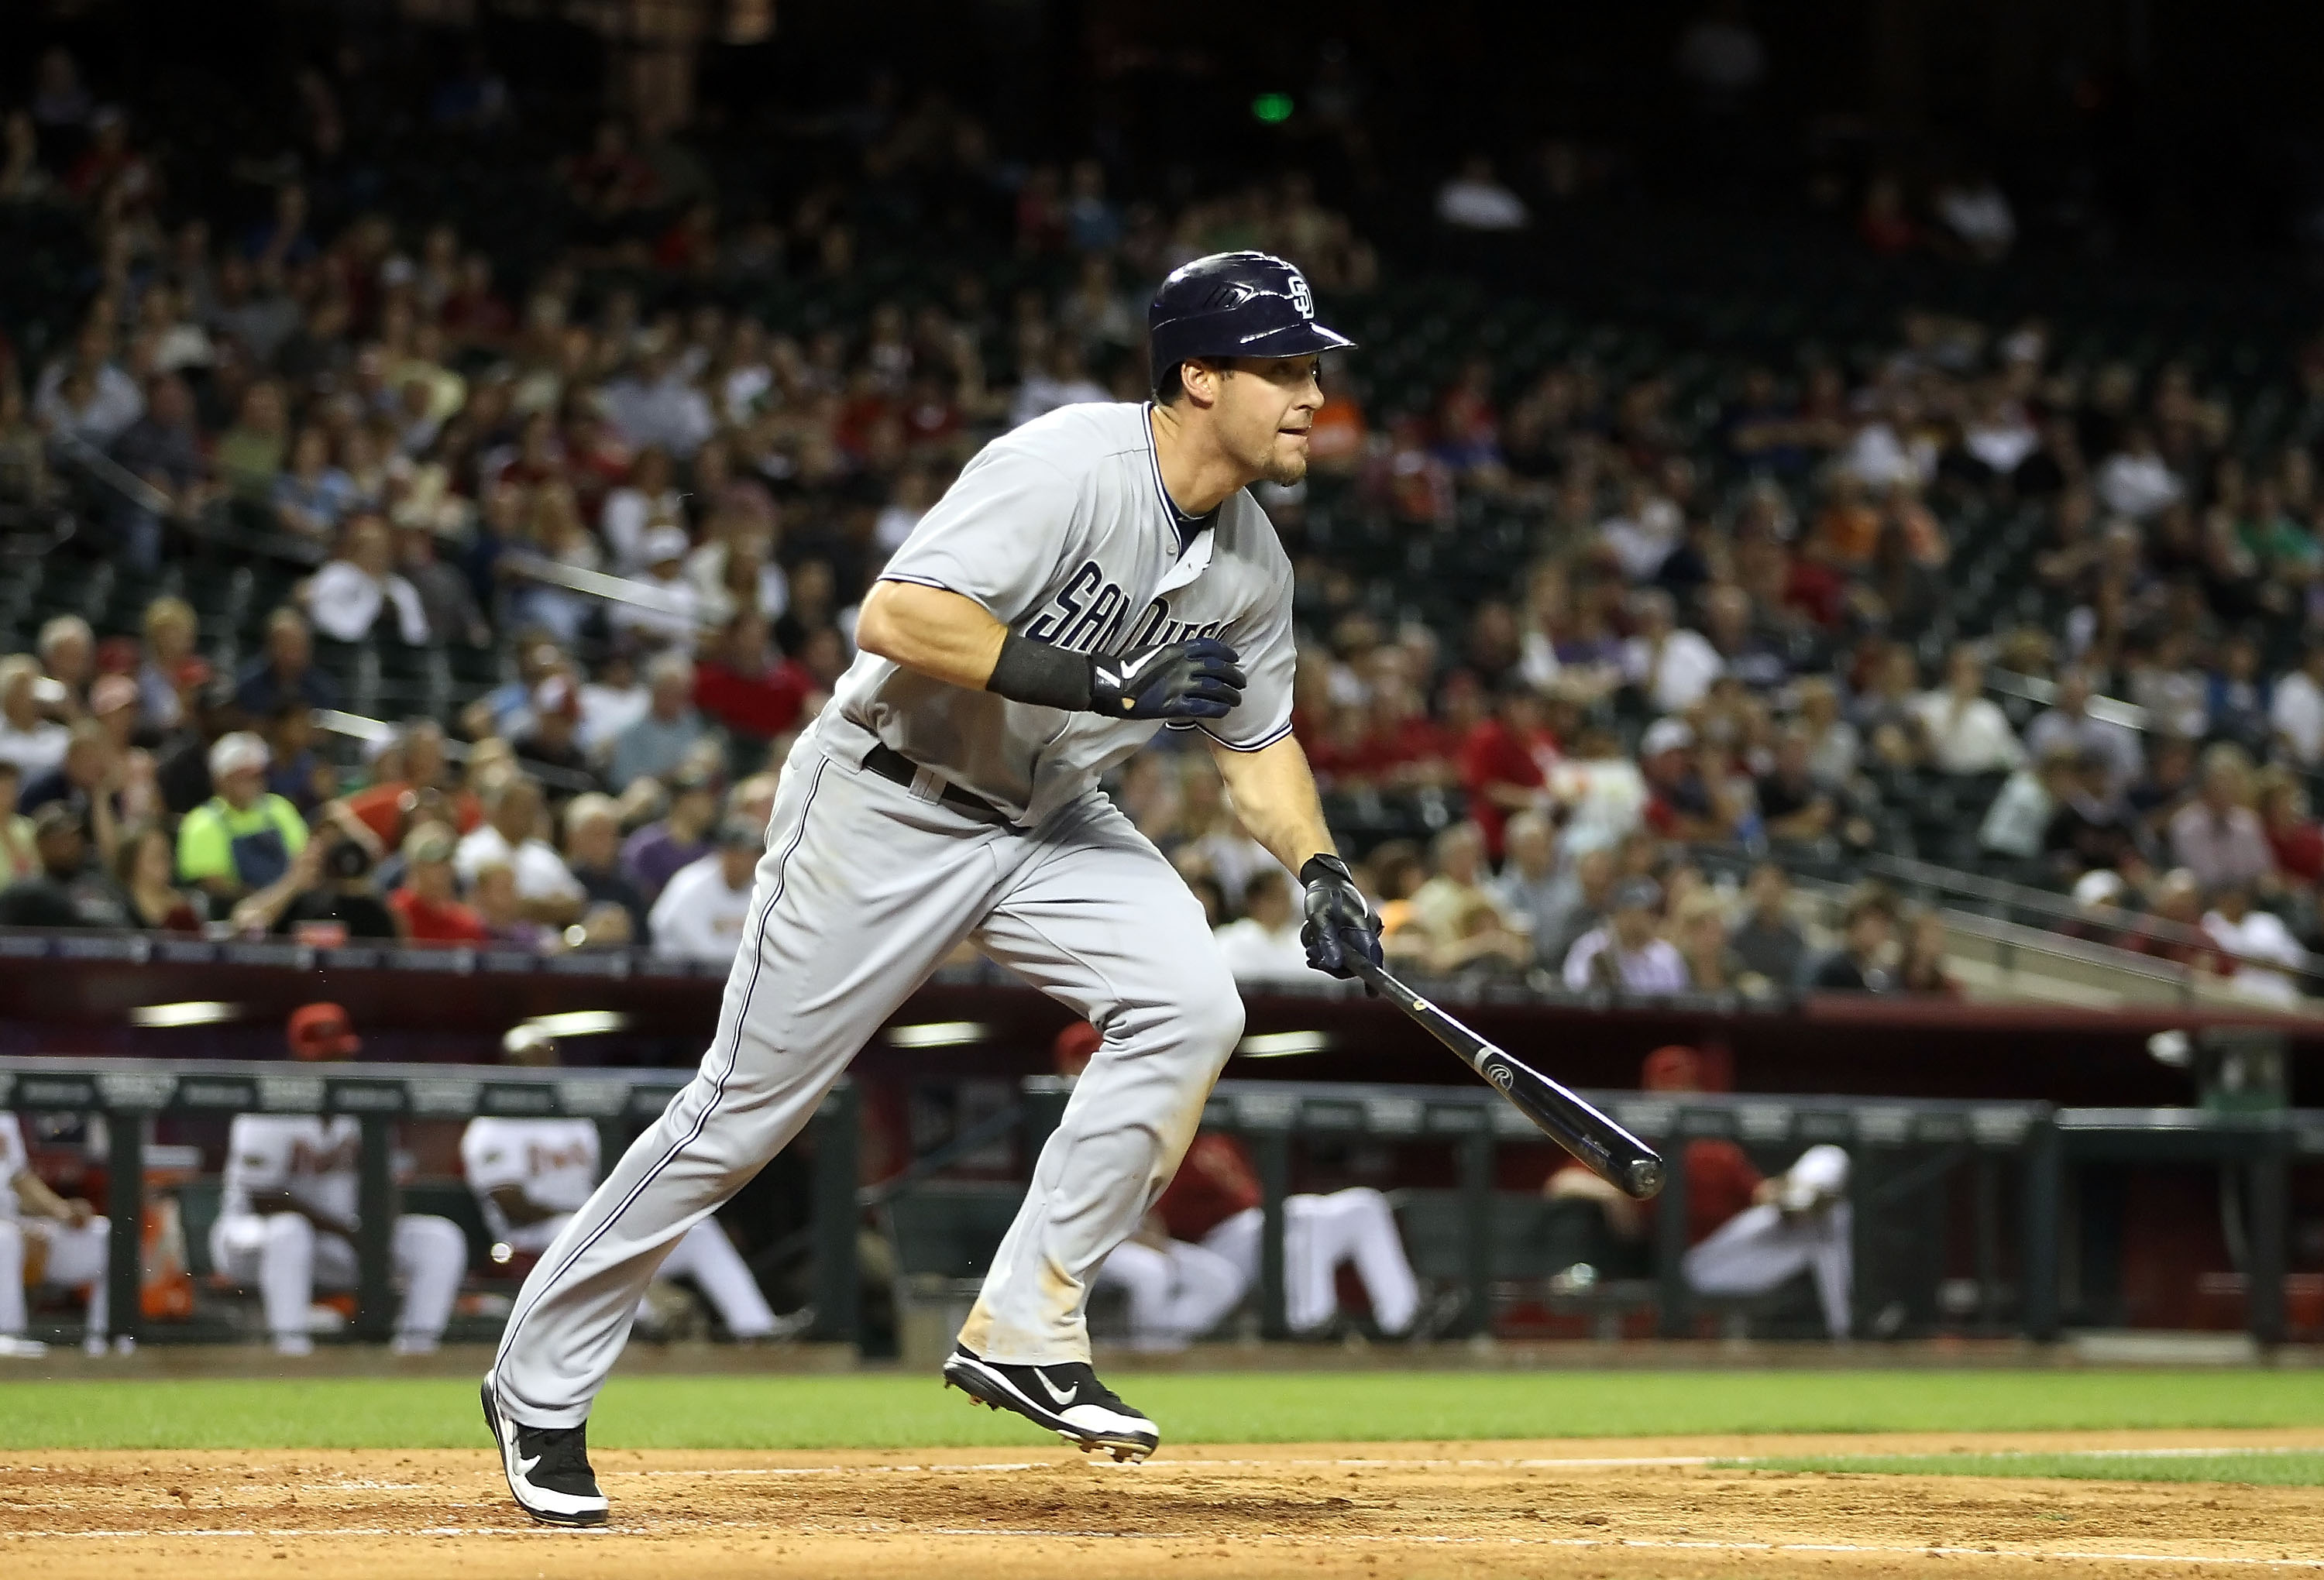 PHOENIX, AZ - MAY 17:  Ryan Ludwick #47 of the San Diego Padres bats against the Arizona Diamondbacks during the Major League Baseball game at Chase Field on May 17, 2011 in Phoenix, Arizona.  (Photo by Christian Petersen/Getty Images)